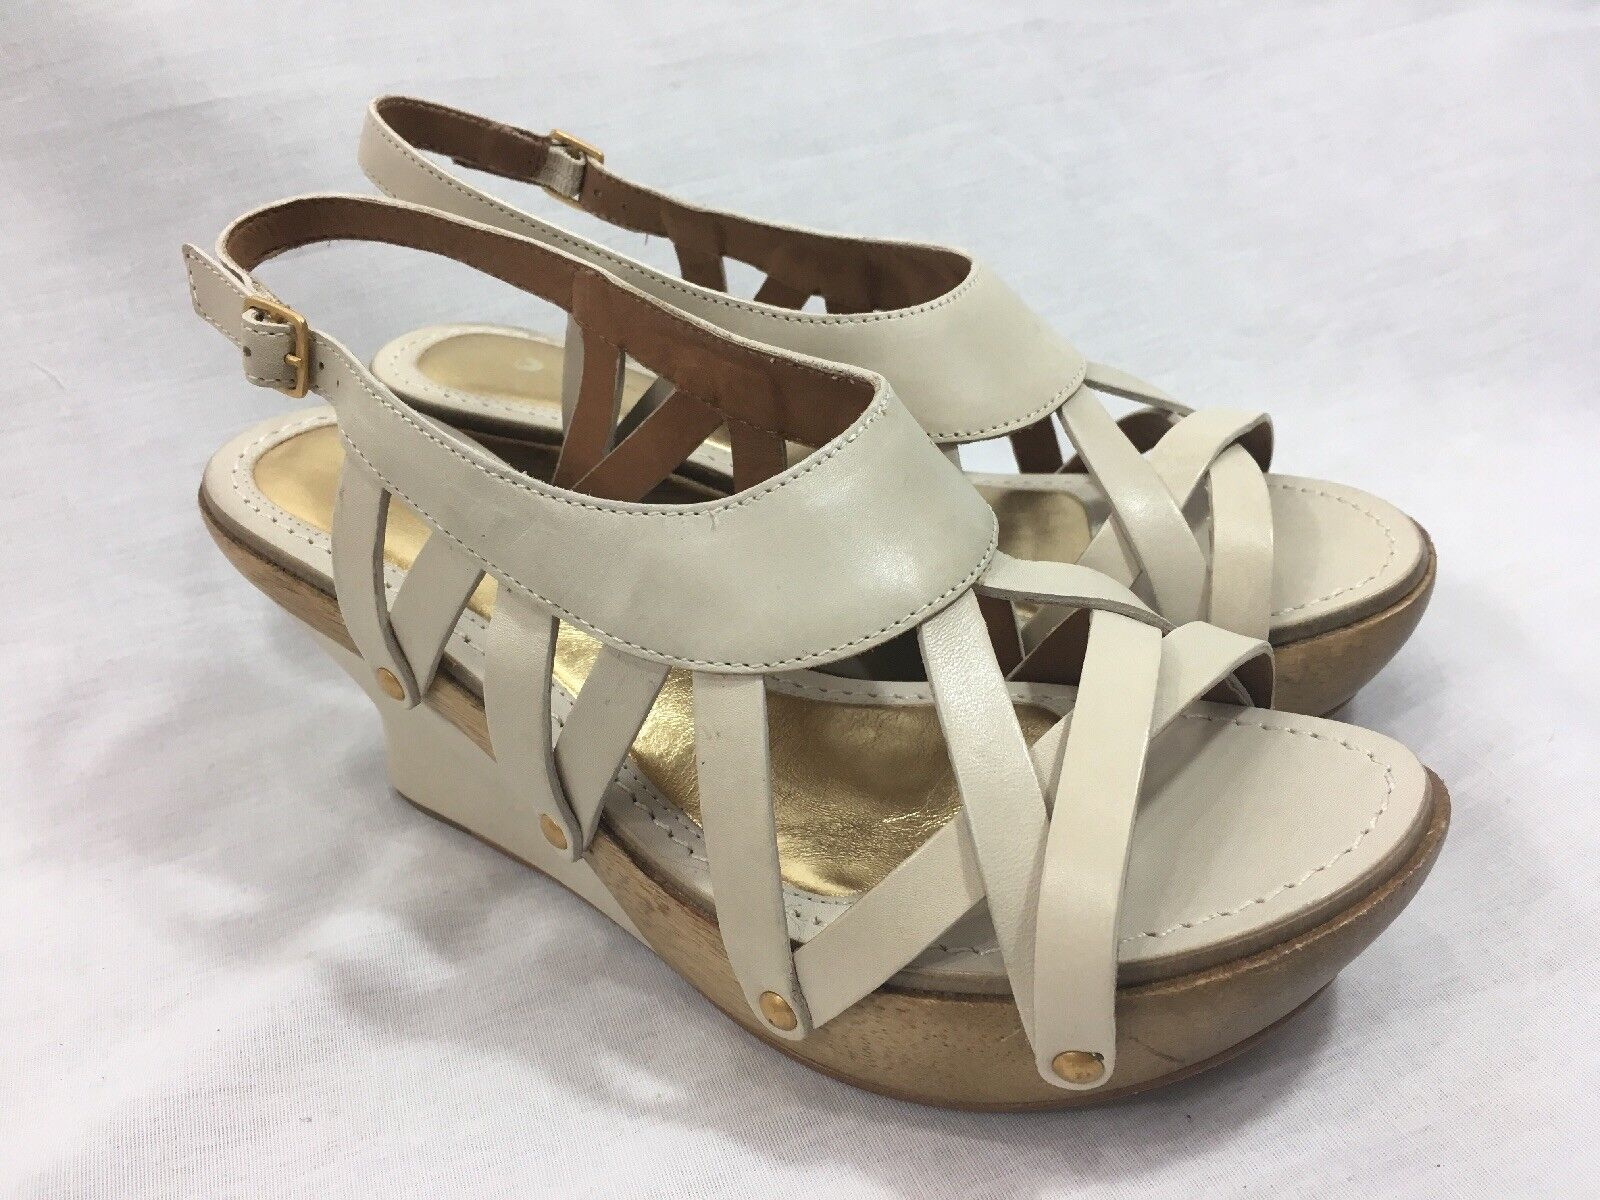 NEW Anthropologie Leifsdottir Oiva Leather Womens Stucco Sandals Wedge Heel Nude